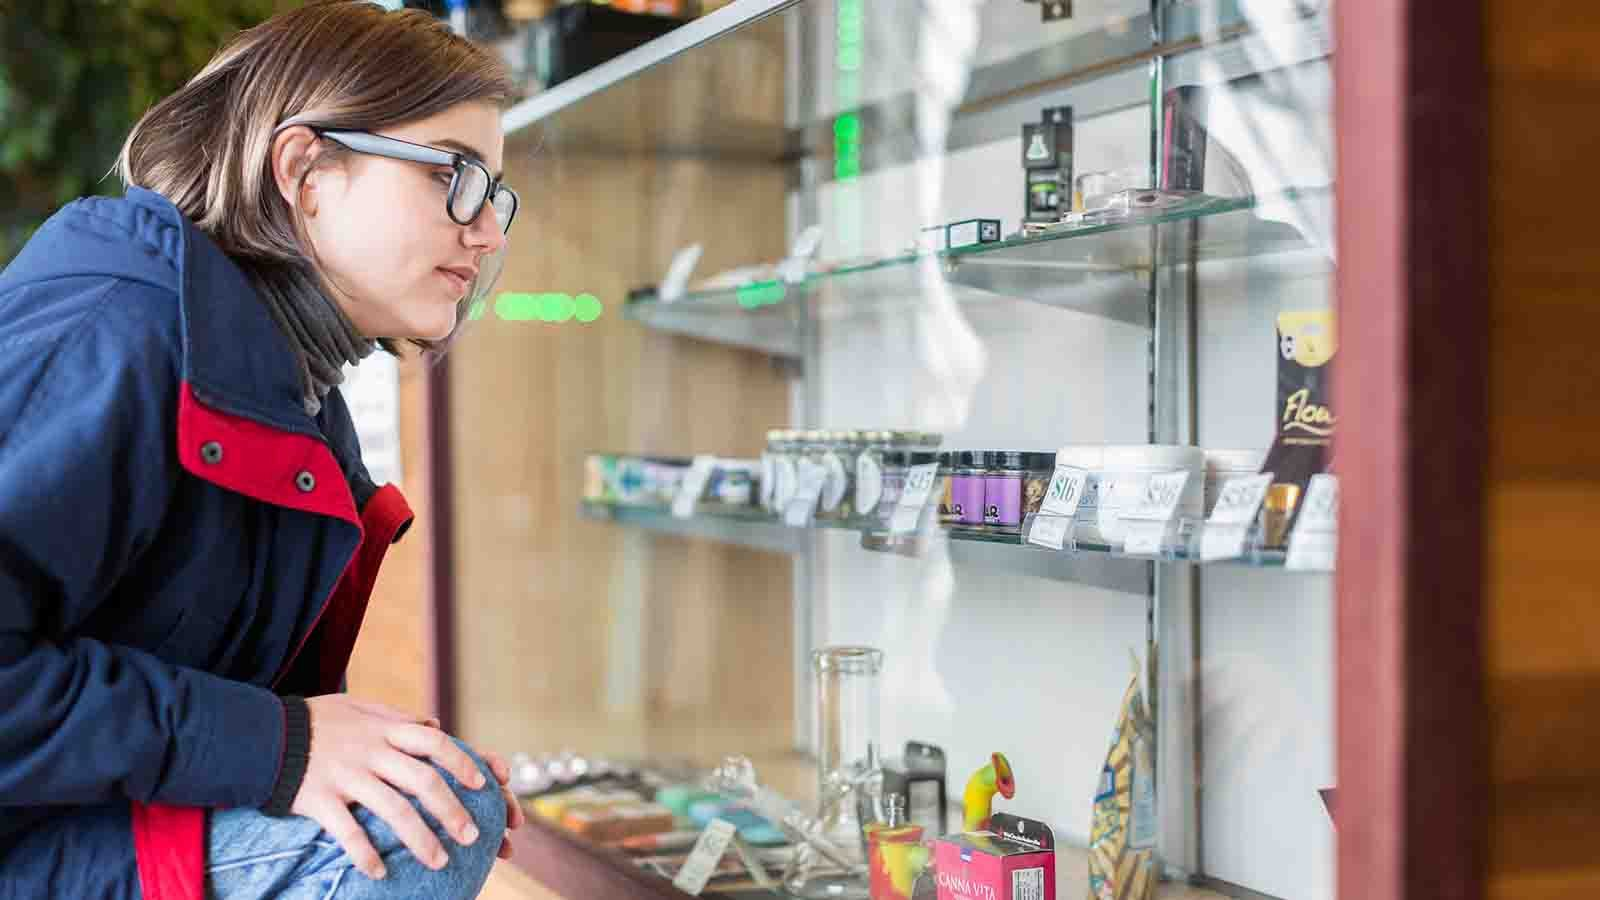 Customer at a licensed cannabis dispensary